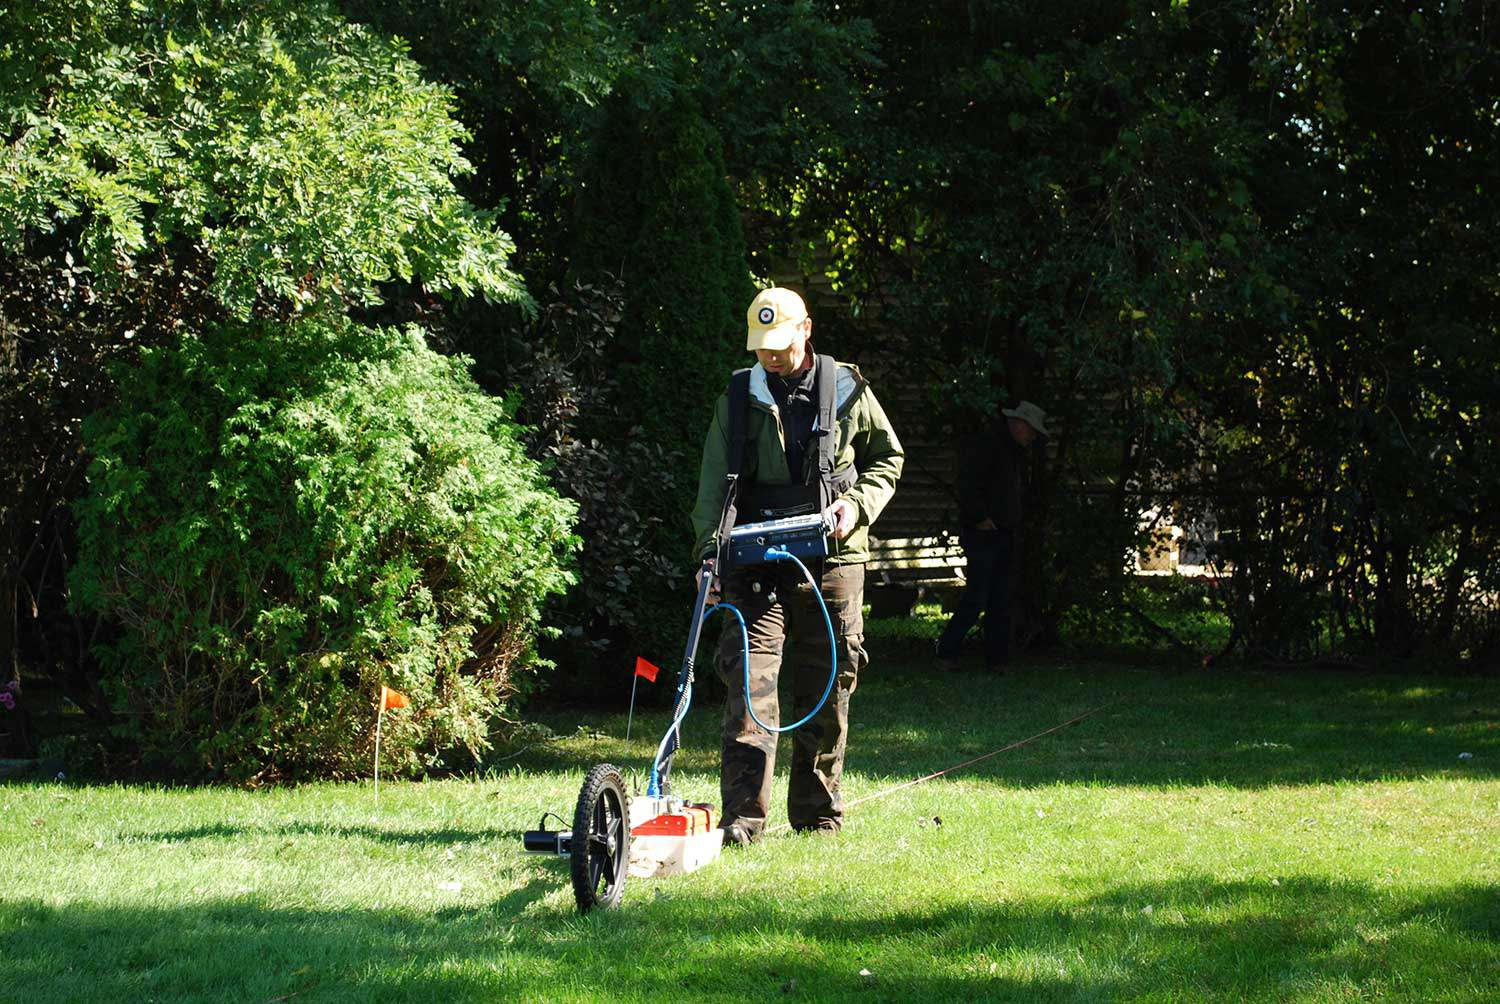 Using ground penetrating radar at the Henson Family Cemetery in 2011.